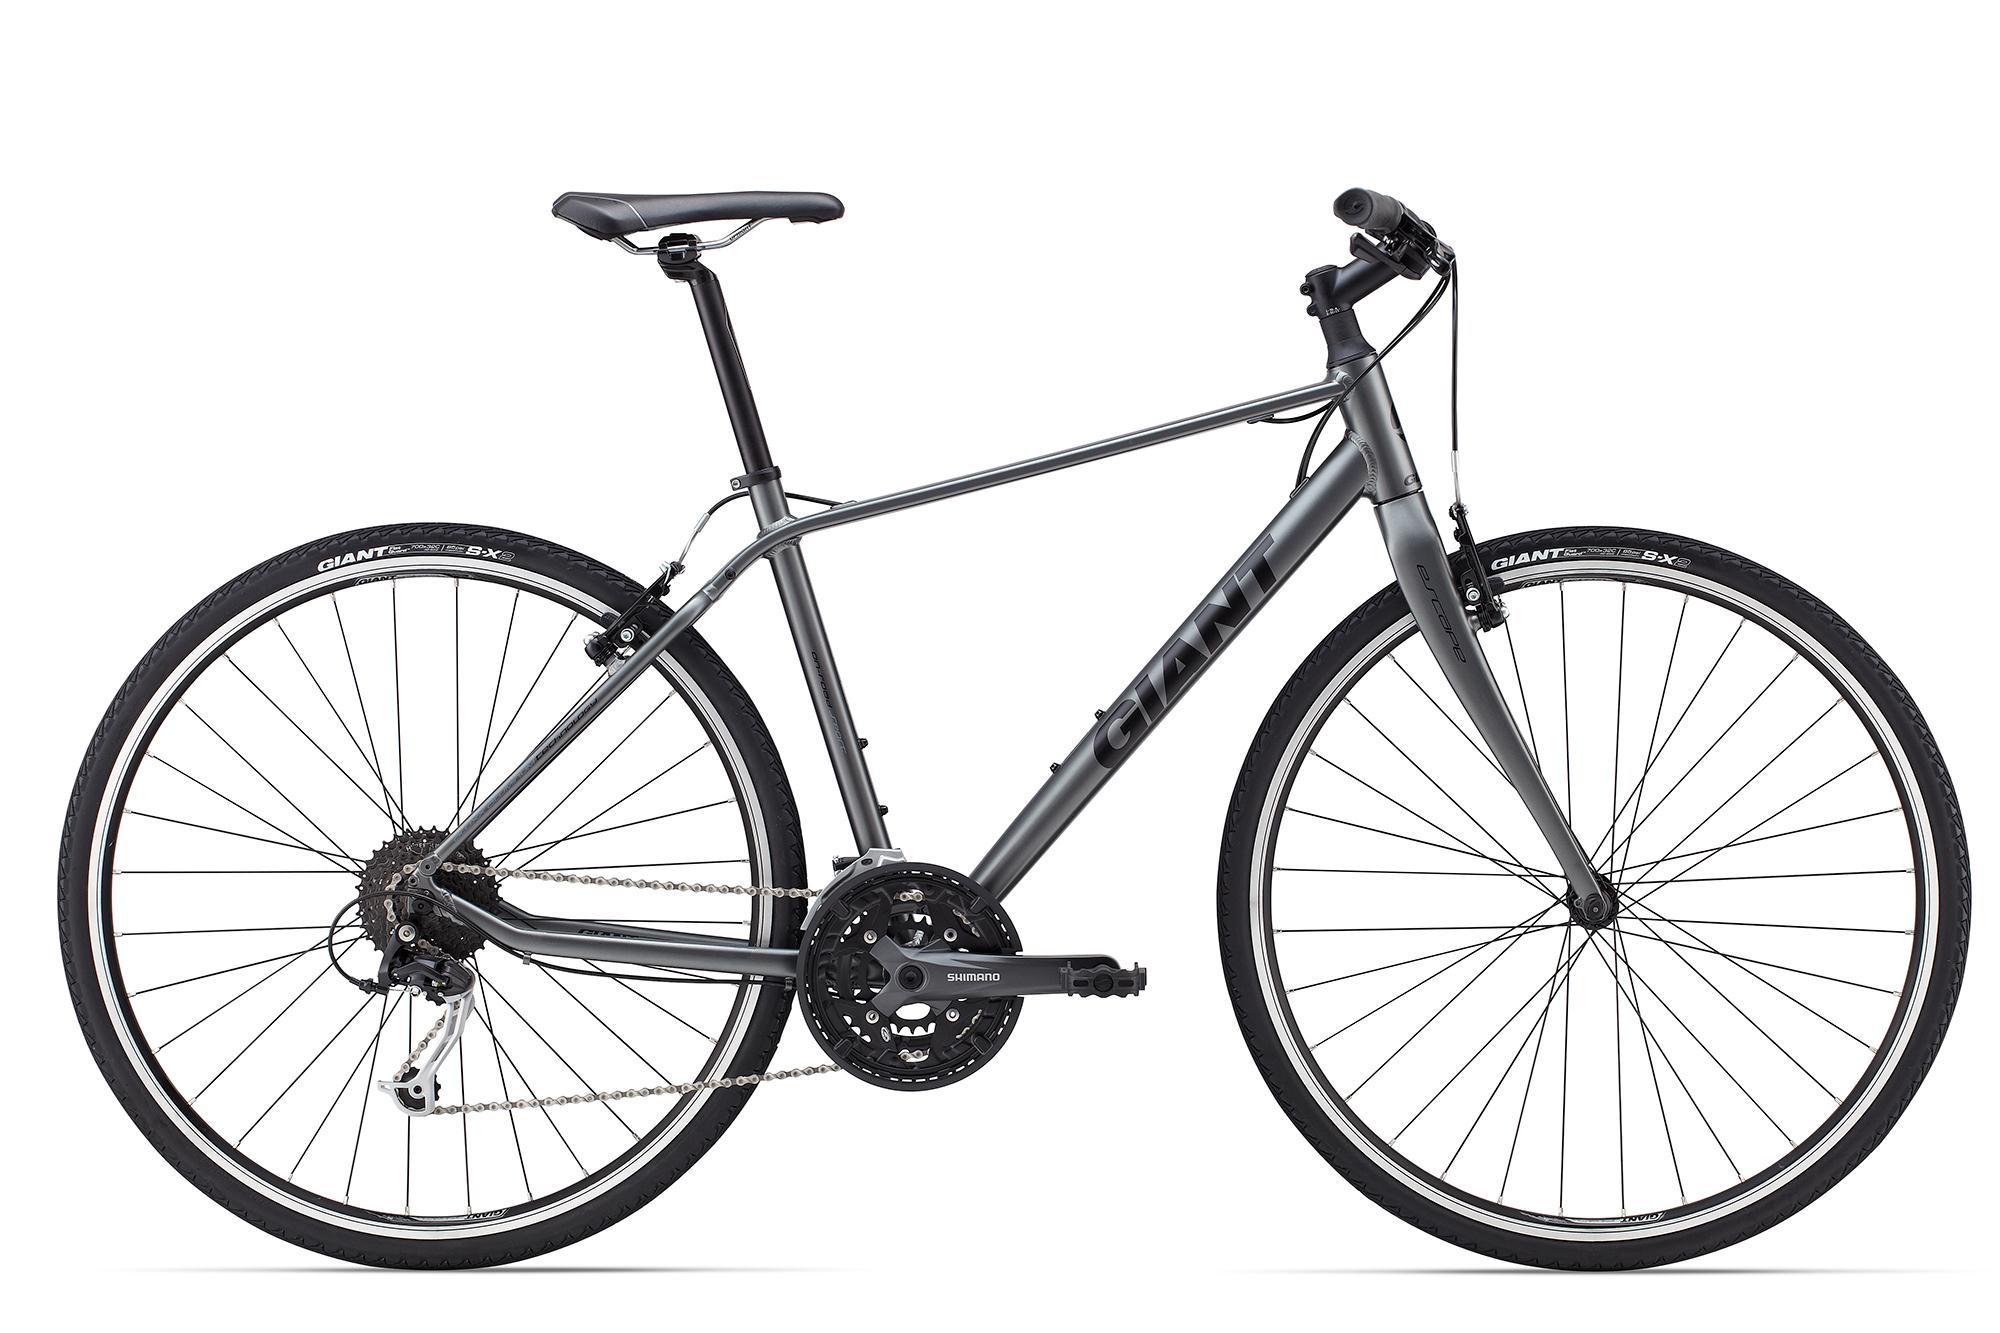 Rent hybrid bicycles <br/>(city bikes/trekking bikes)